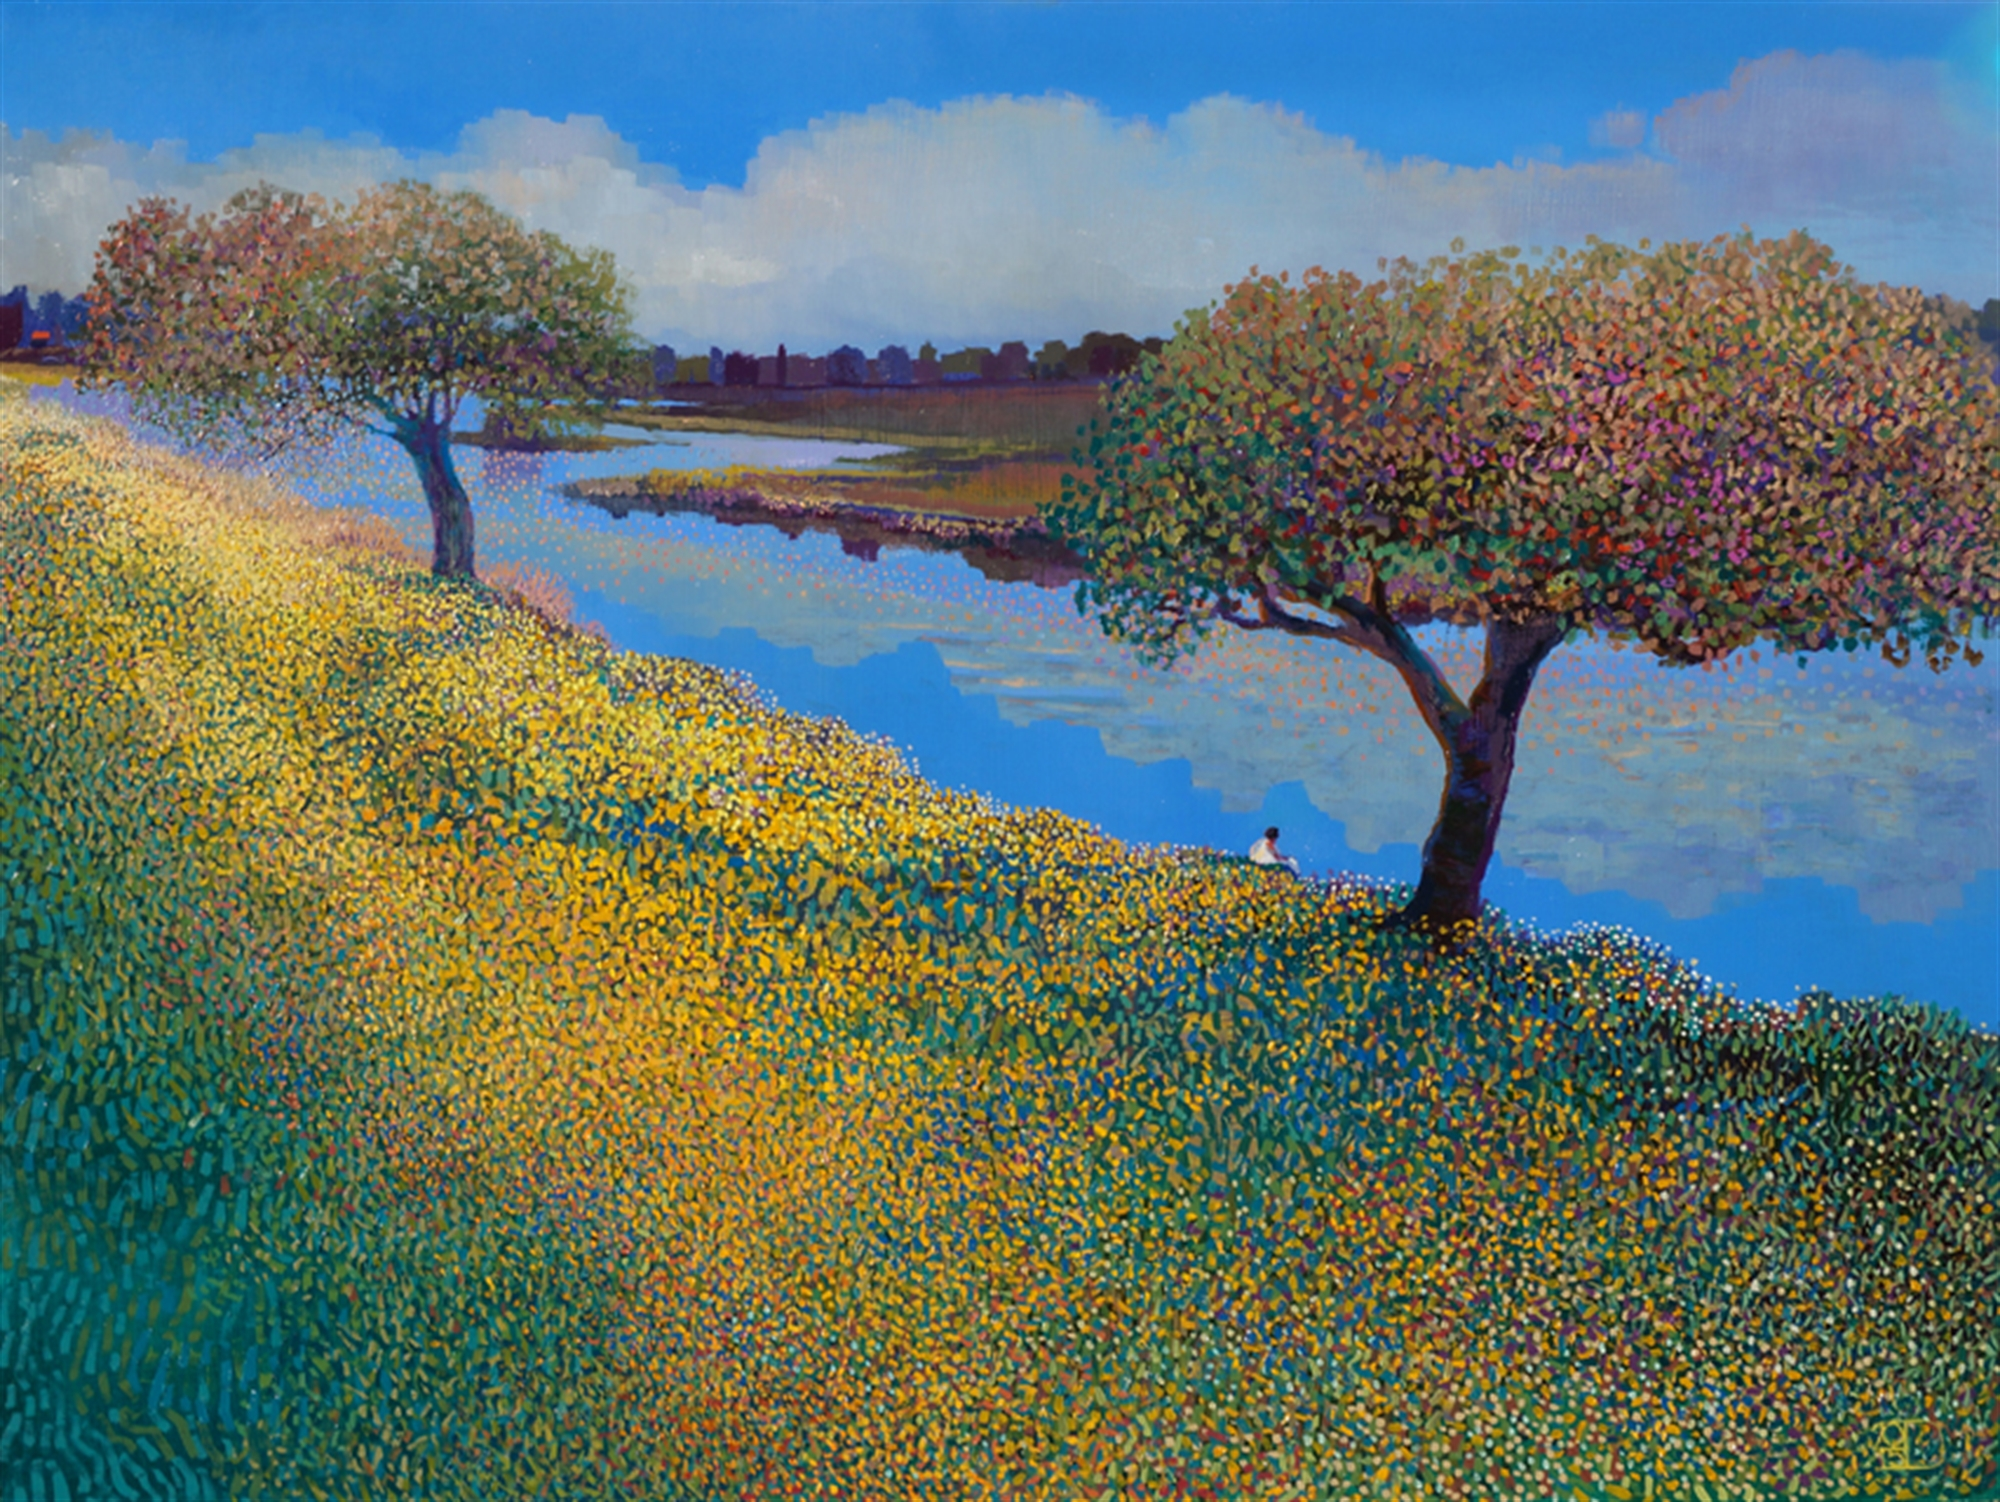 Down by the River by Ton Dubbeldam